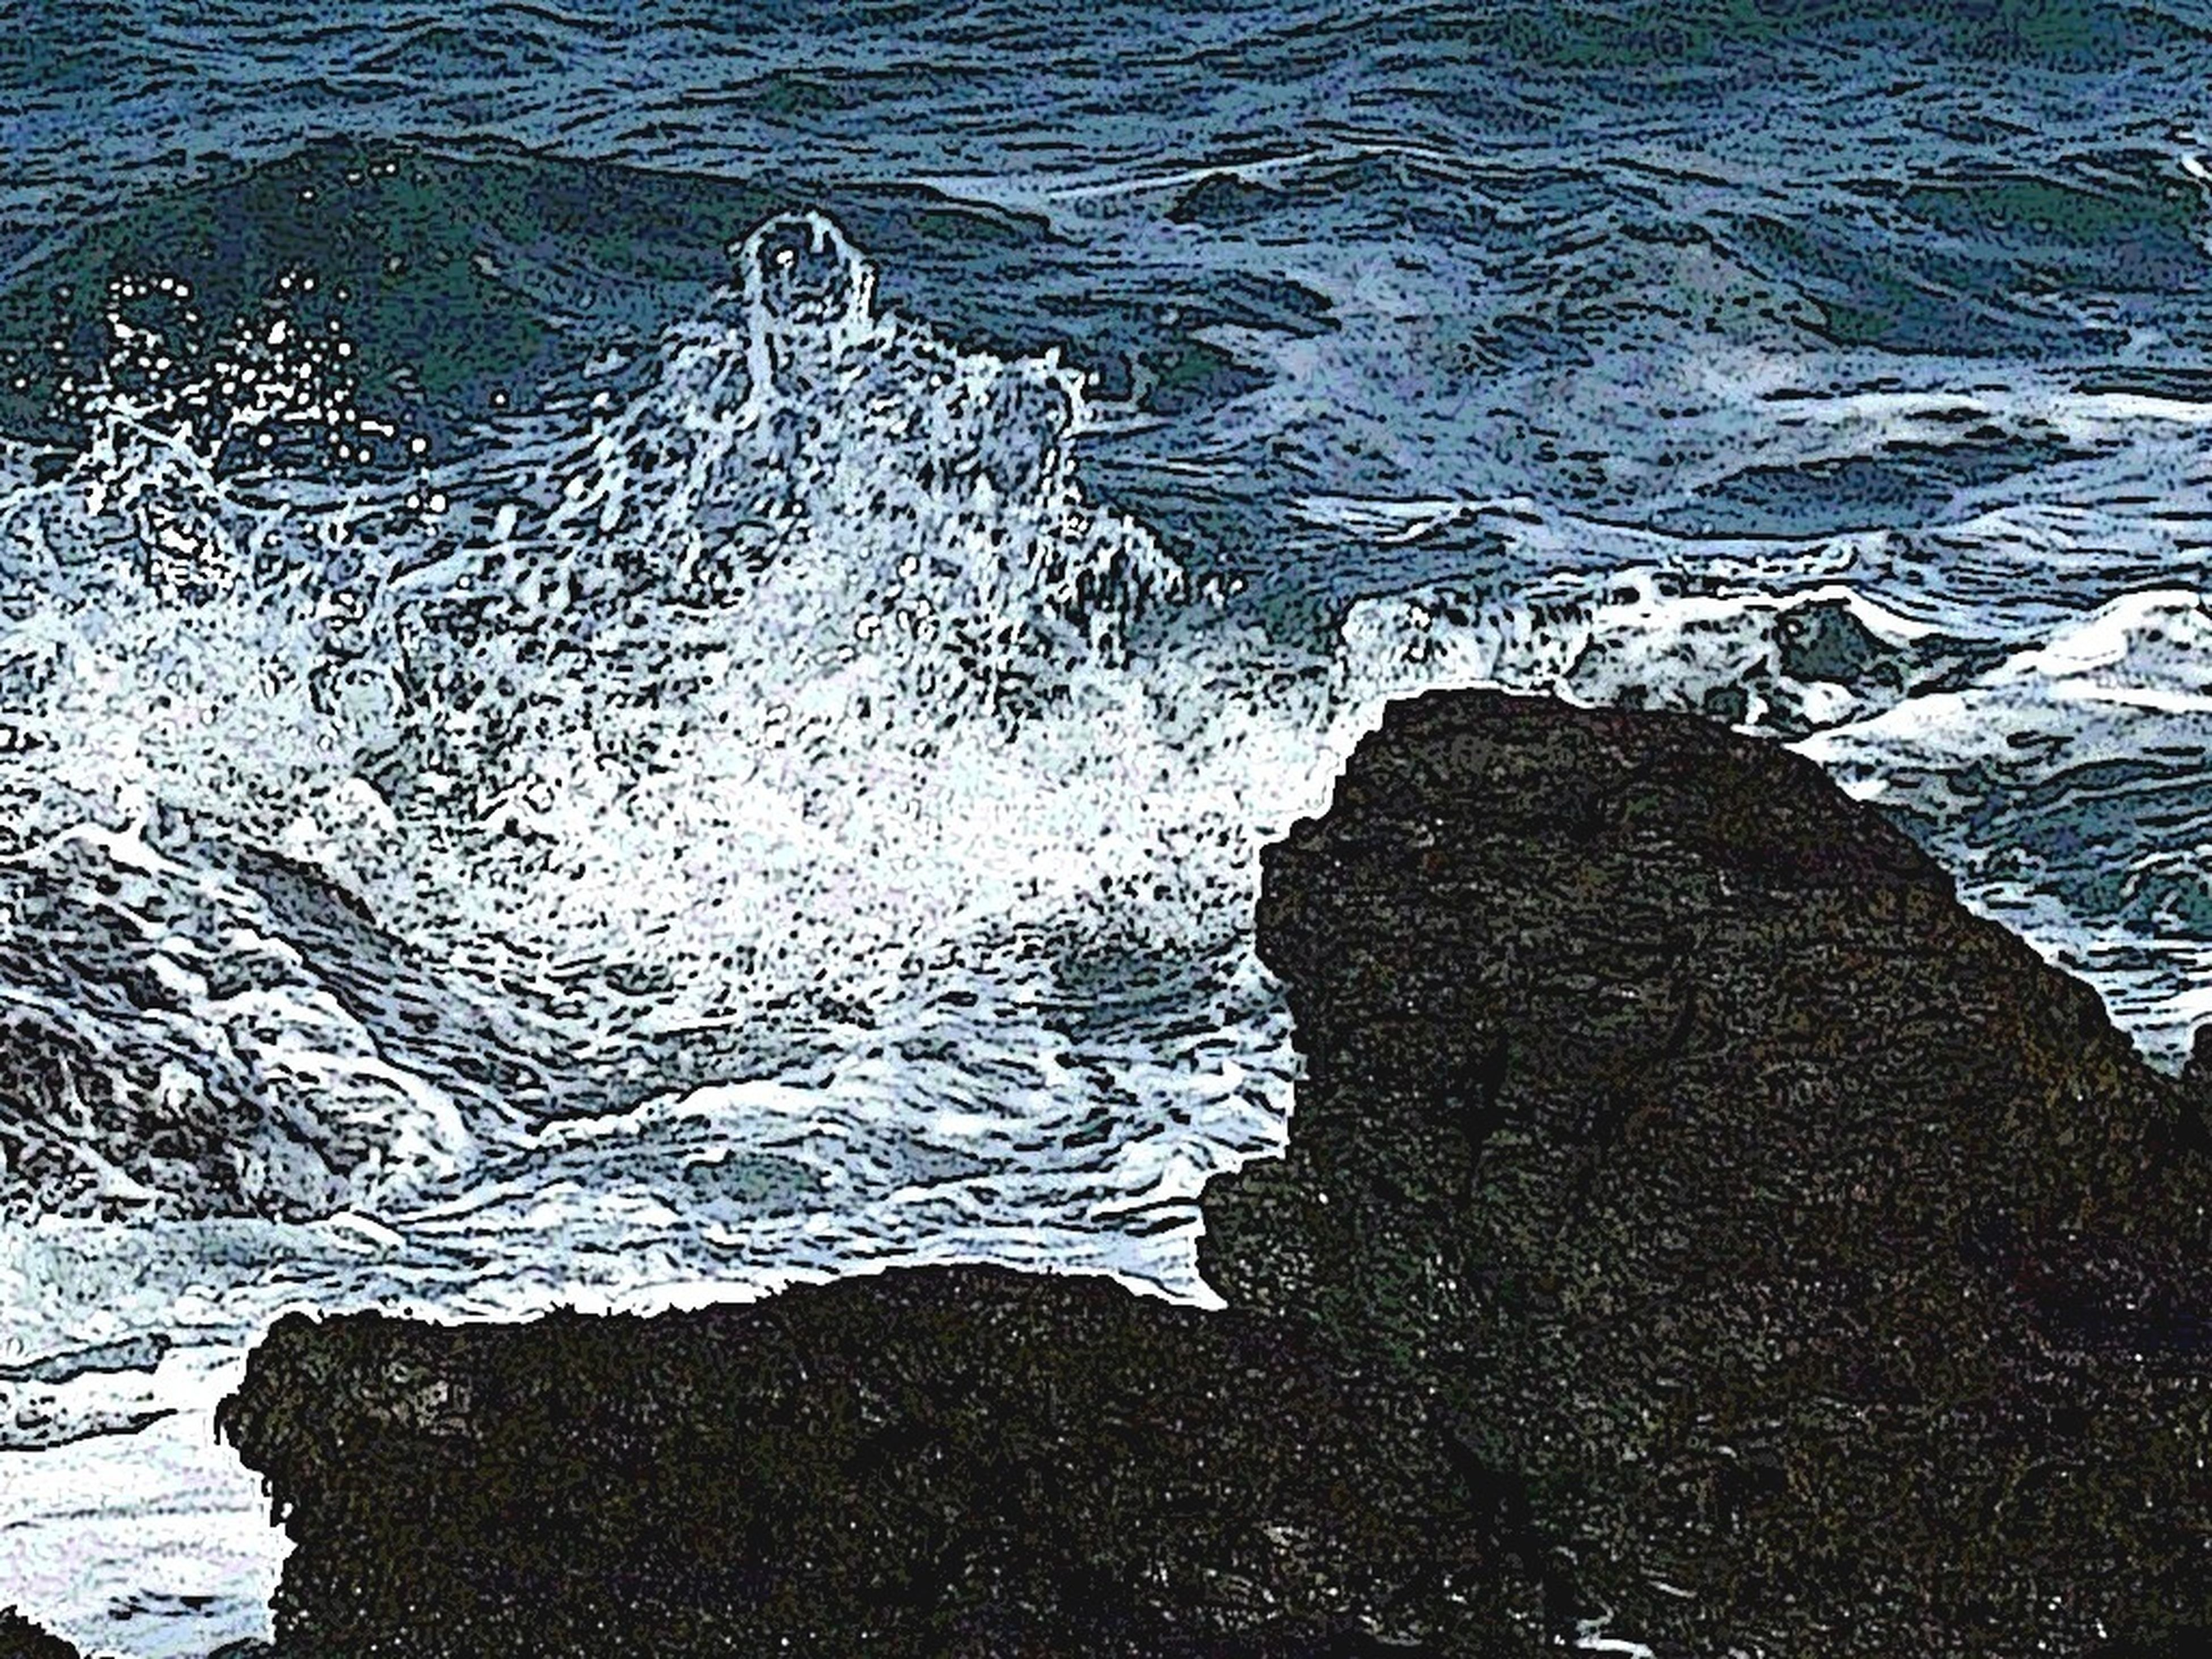 water, sea, wave, rippled, high angle view, surf, splashing, motion, nature, waterfront, beauty in nature, tranquility, day, outdoors, no people, sunlight, full frame, rock - object, scenics, shore